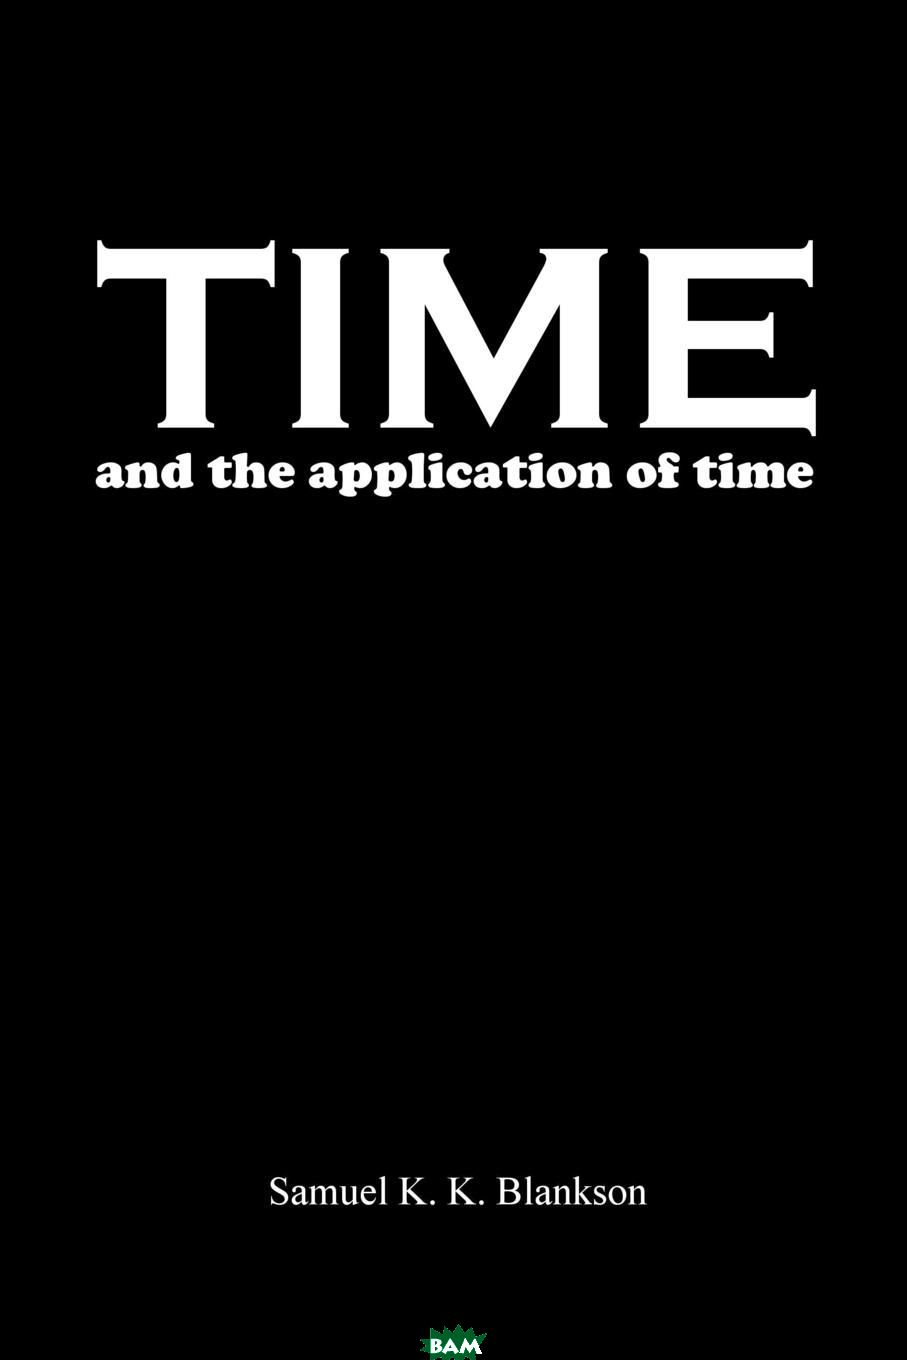 Samuel K.K. Blankson / TIME AND THE APPLICATION OF TIME